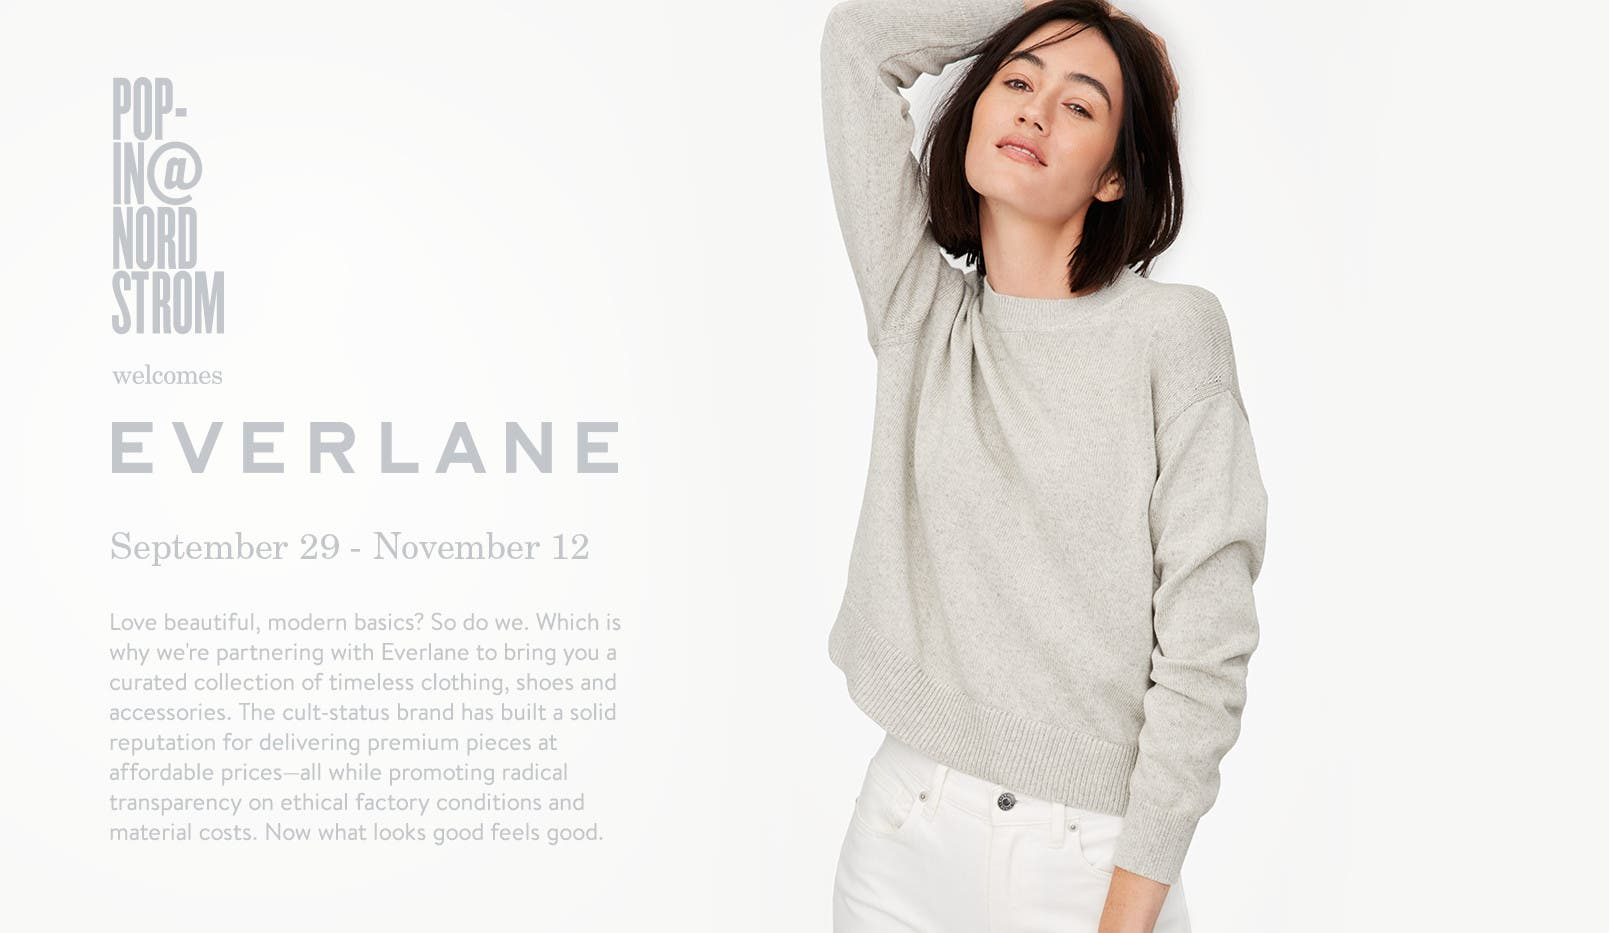 Coming soon: Pop-In@Nordstrom Welcomes Everlane. September 29-November 12.